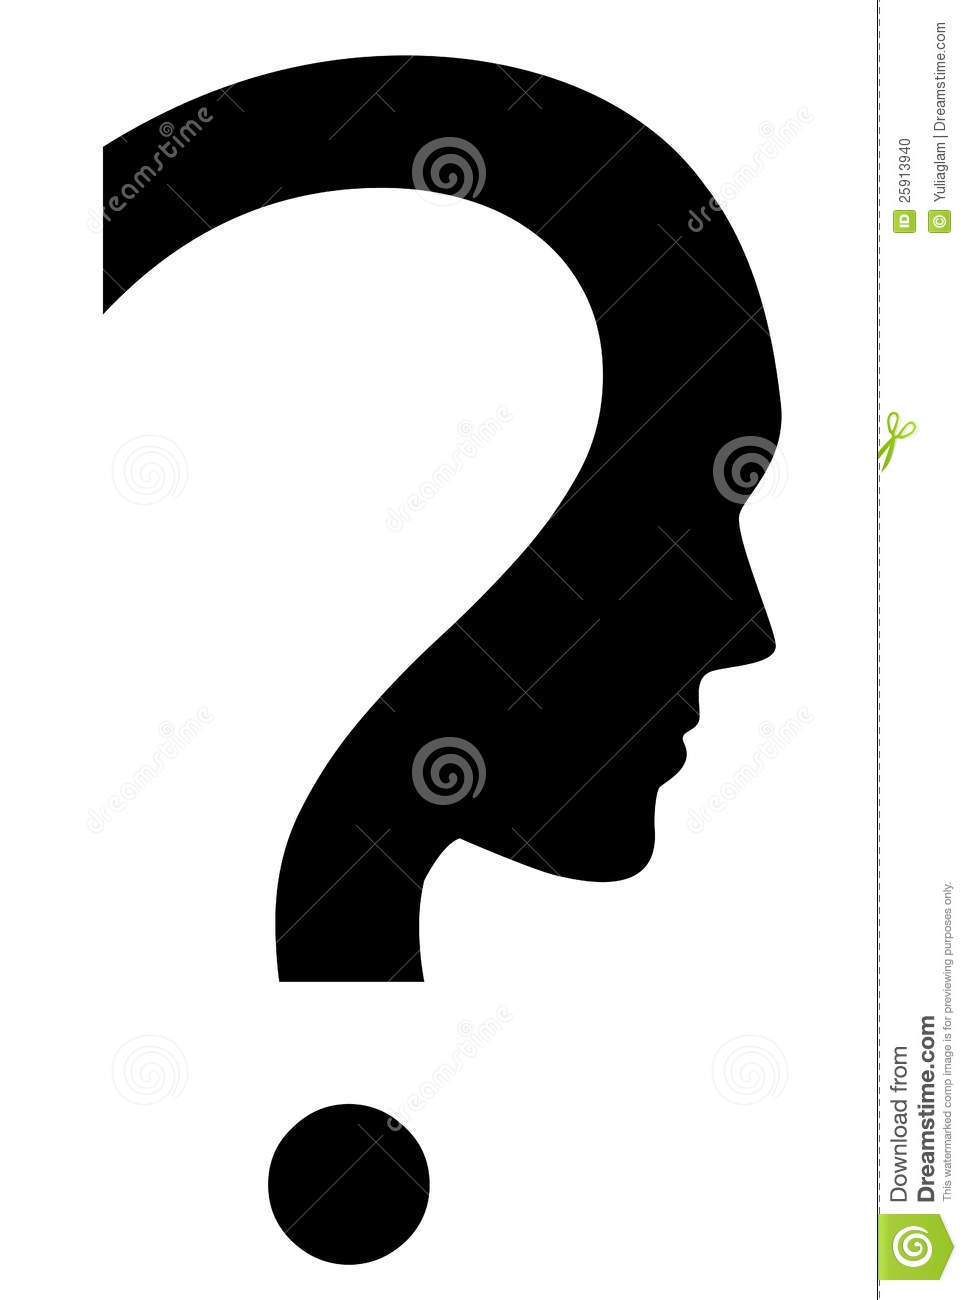 Pics photos clip art cartoon scientist with question mark stock - Question Mark